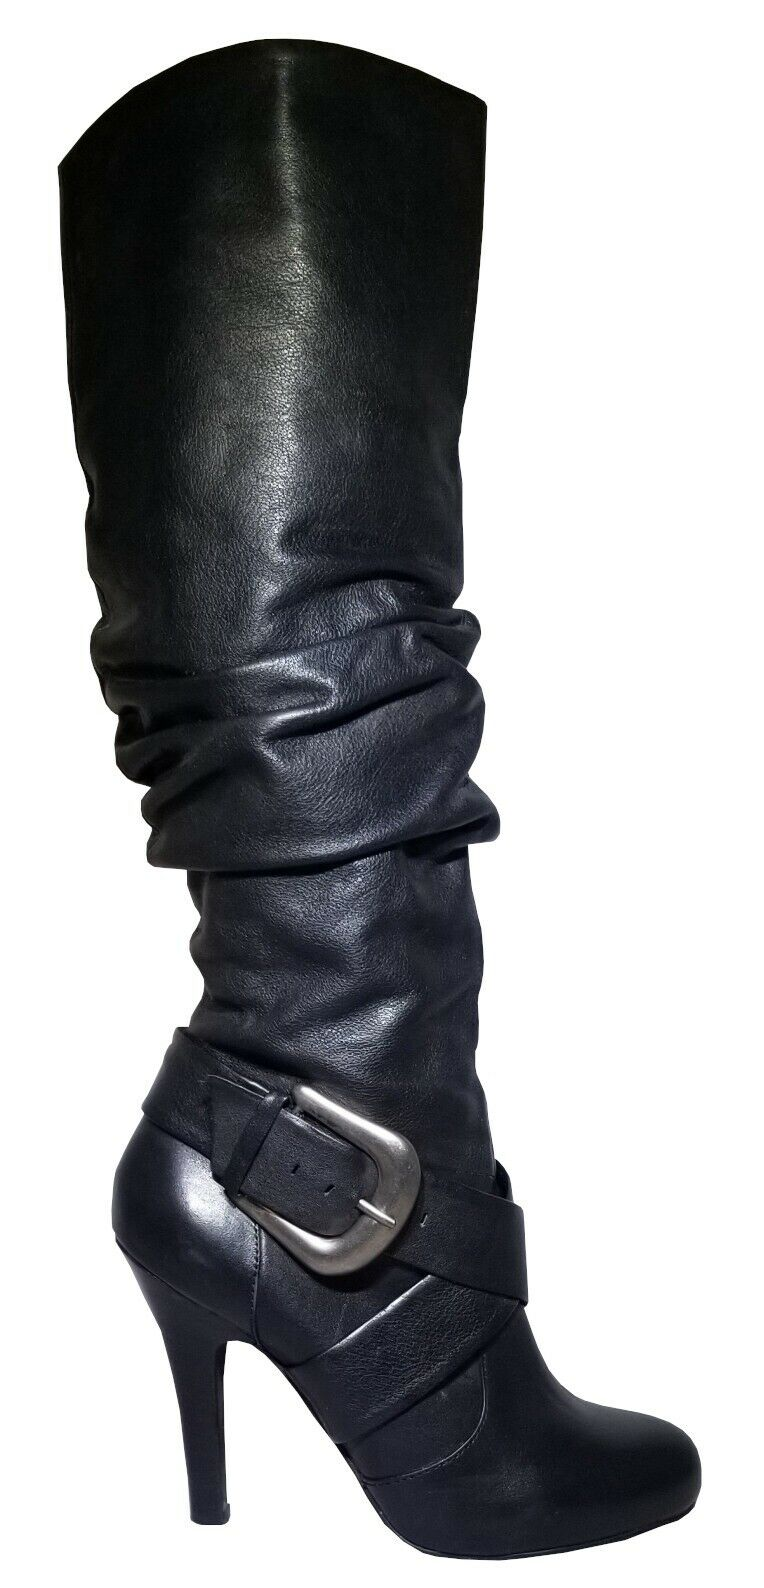 Women's  Beautiful Knee High High High Boots shoes Size 8.5 51b55a